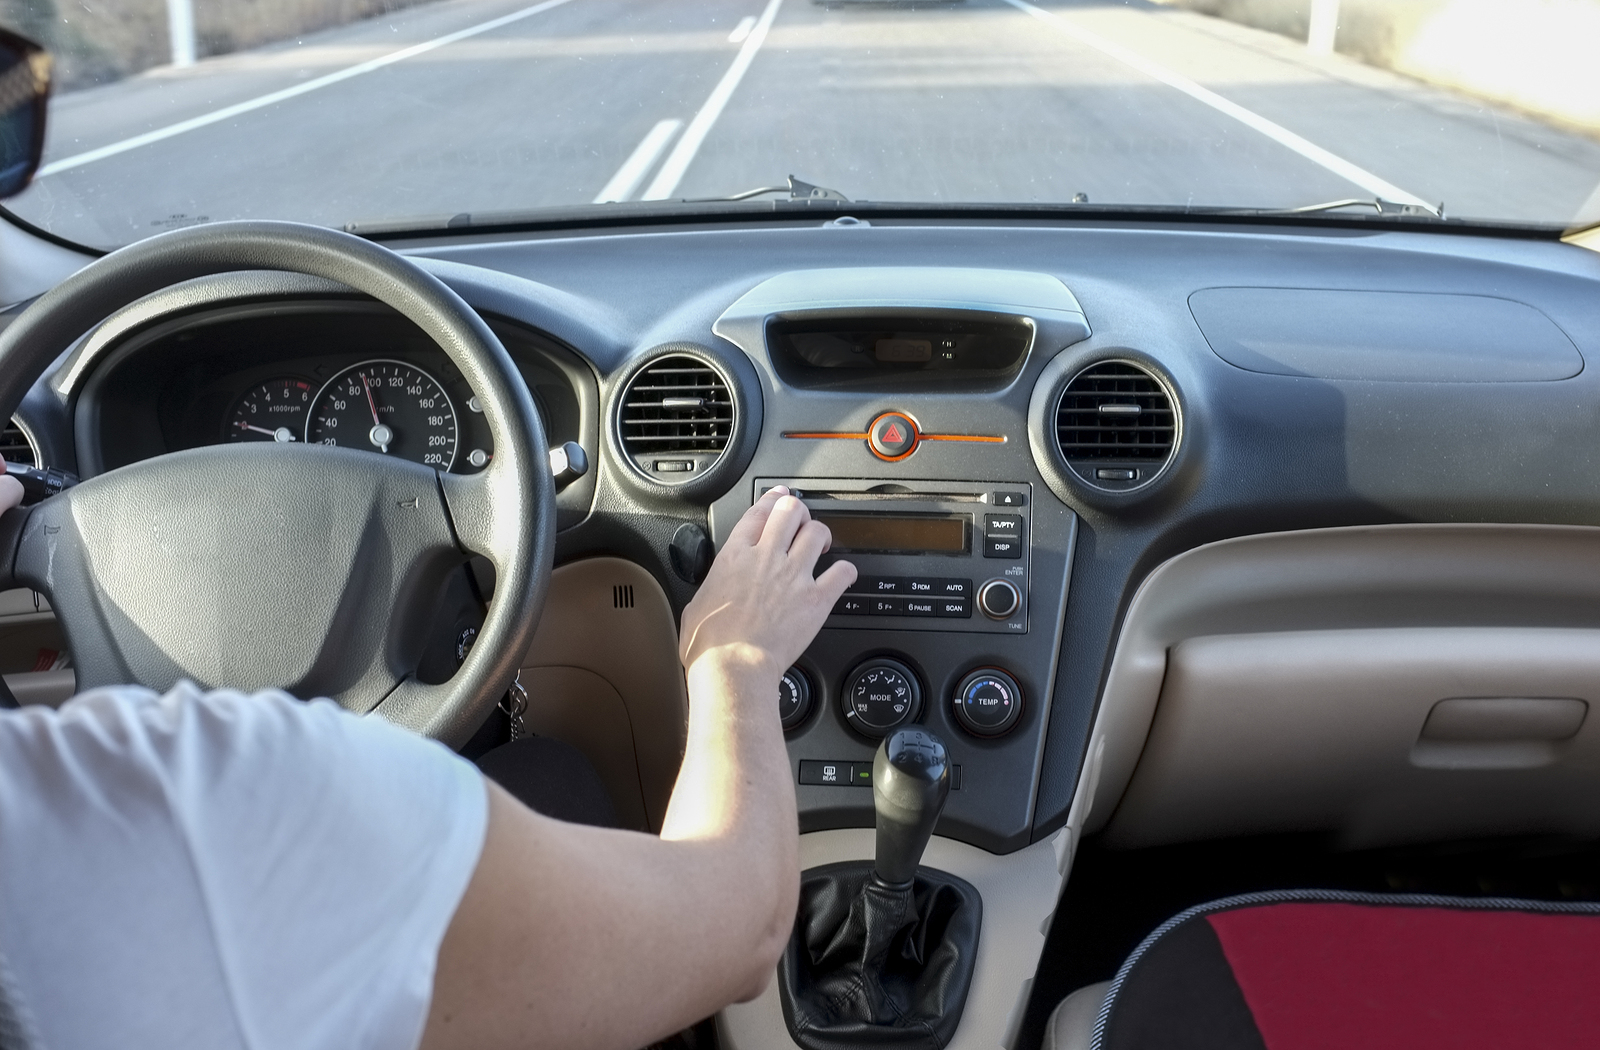 Distracted Driving: Are Our Cars Actually Promoting the Practice?